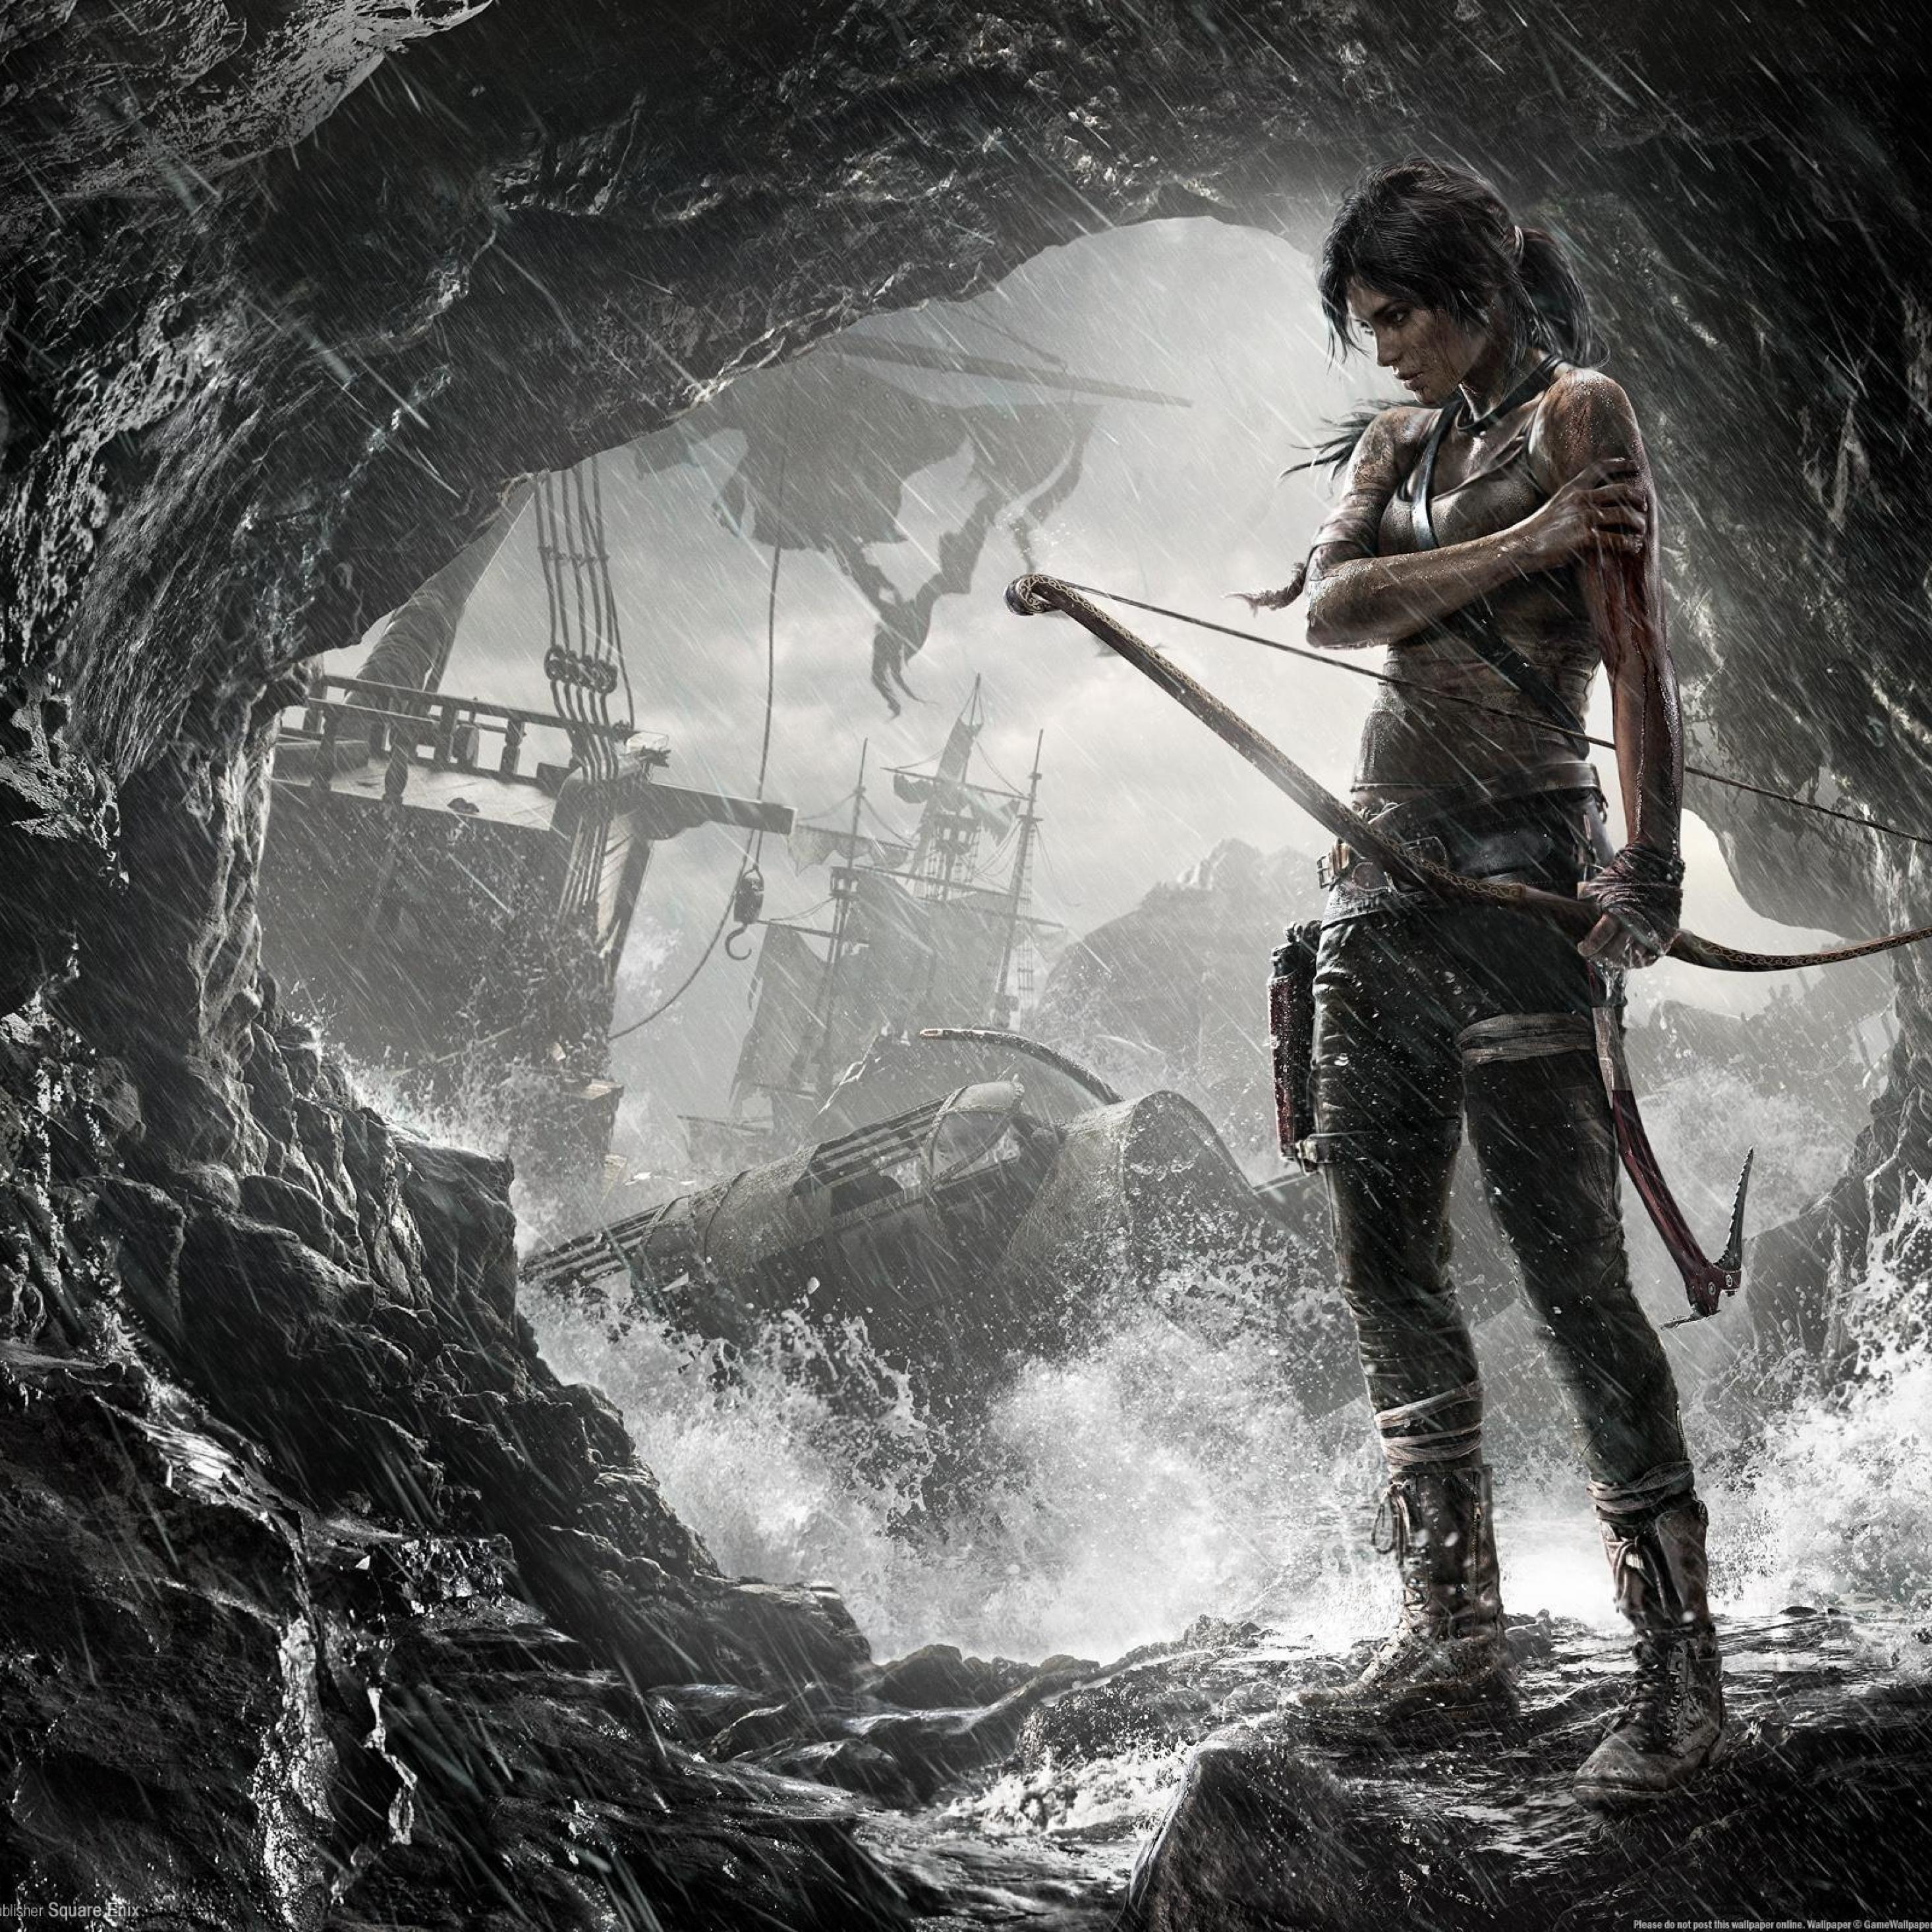 3d Tomb Raider Wallpaper: Tomb Raider 2 Game Art, Full HD 2K Wallpaper